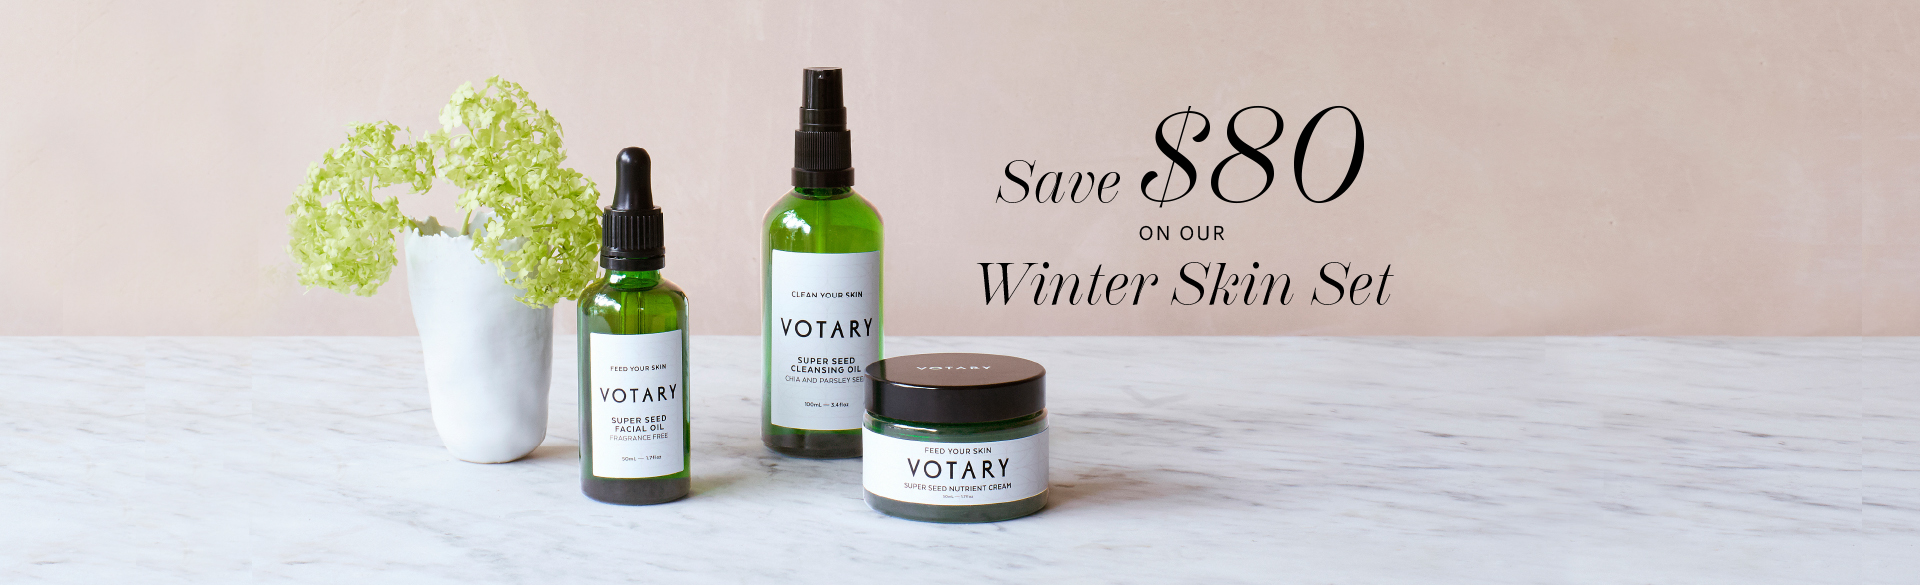 Save $80 on our Winter Skin Set